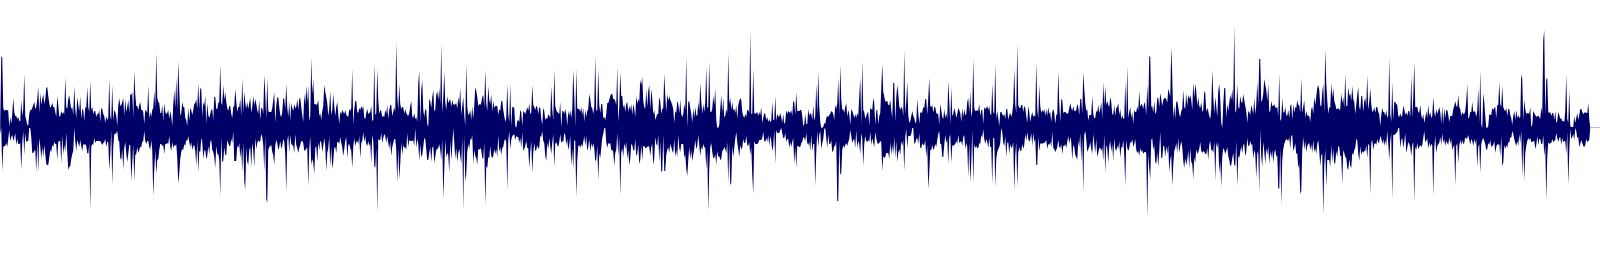 waveform of track #144029